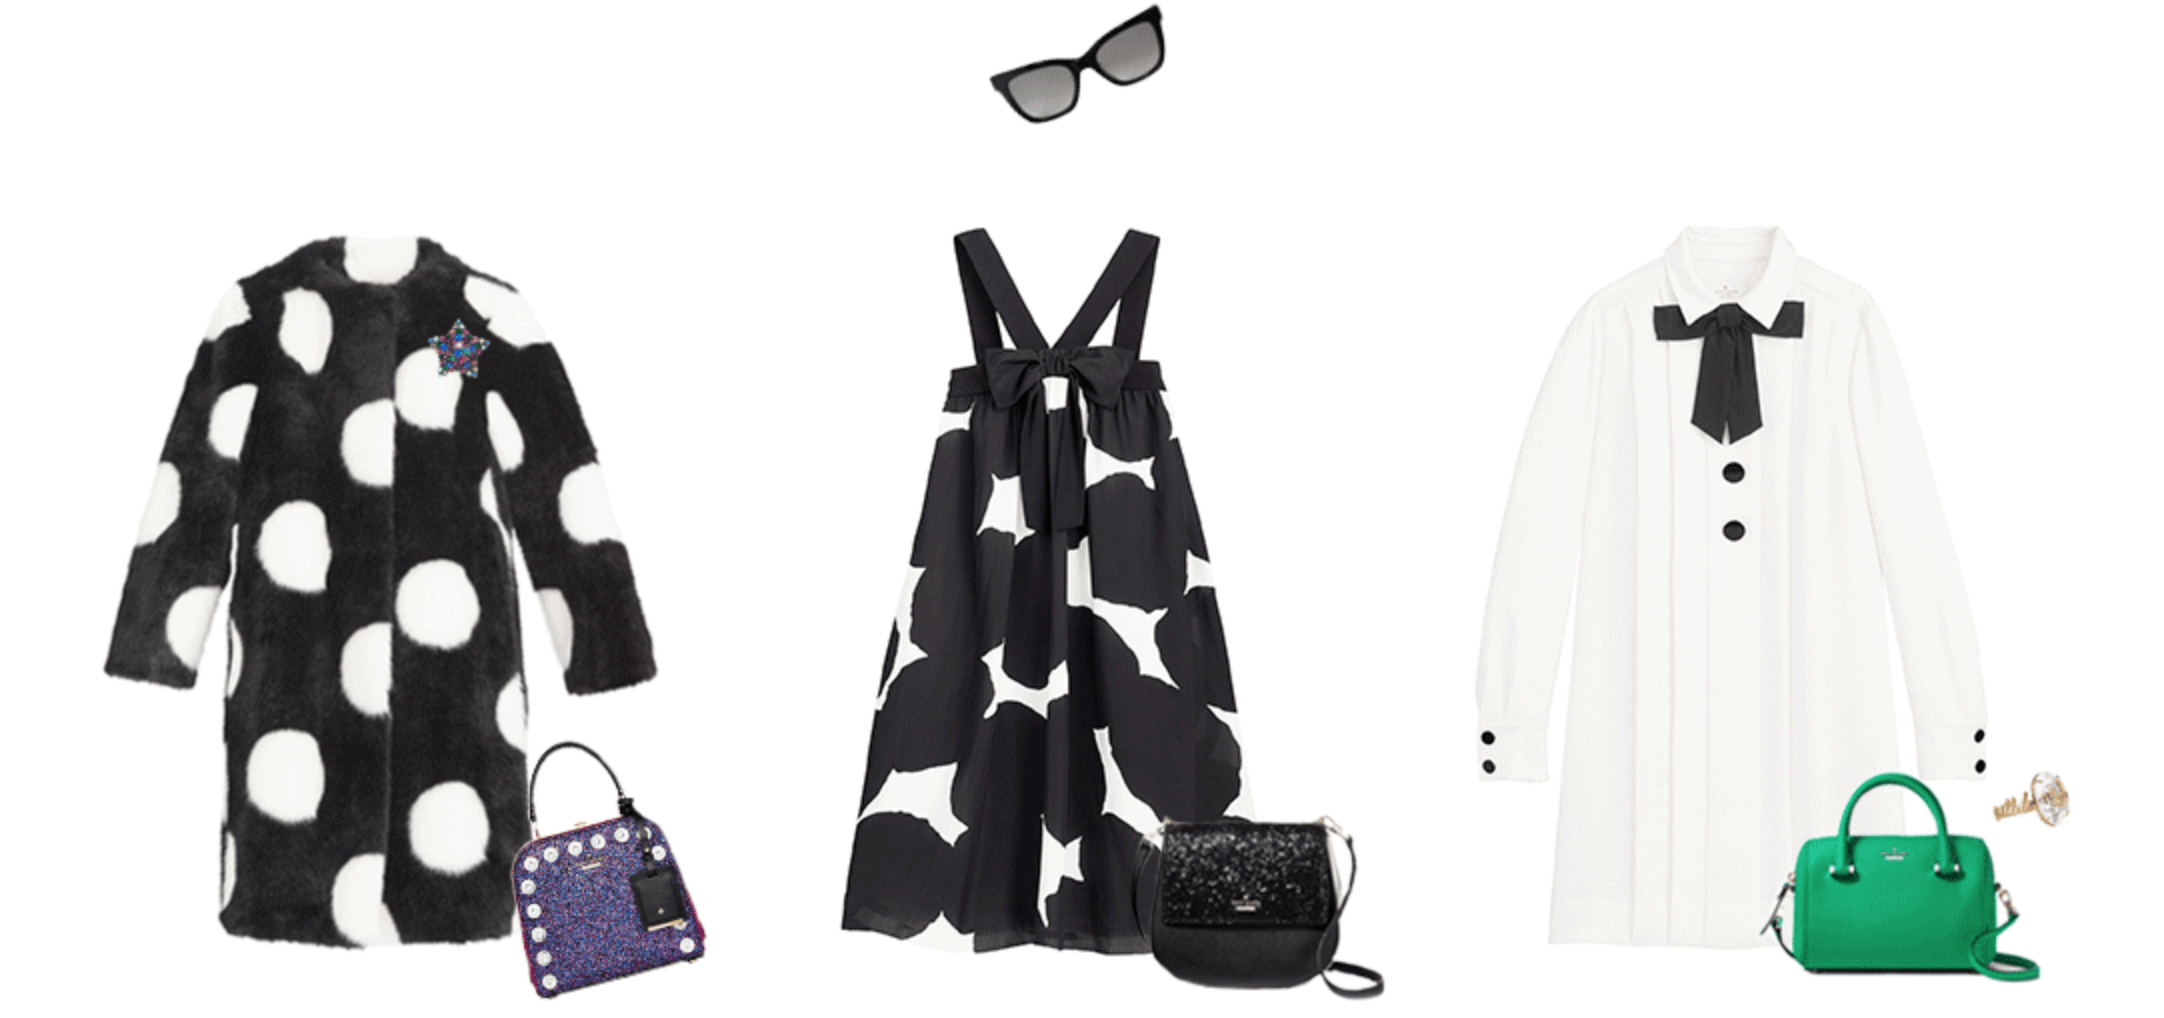 Kate Spade Missadventure outfits: Black and white coat, black and white dot dress, white shirtdress with a green bag